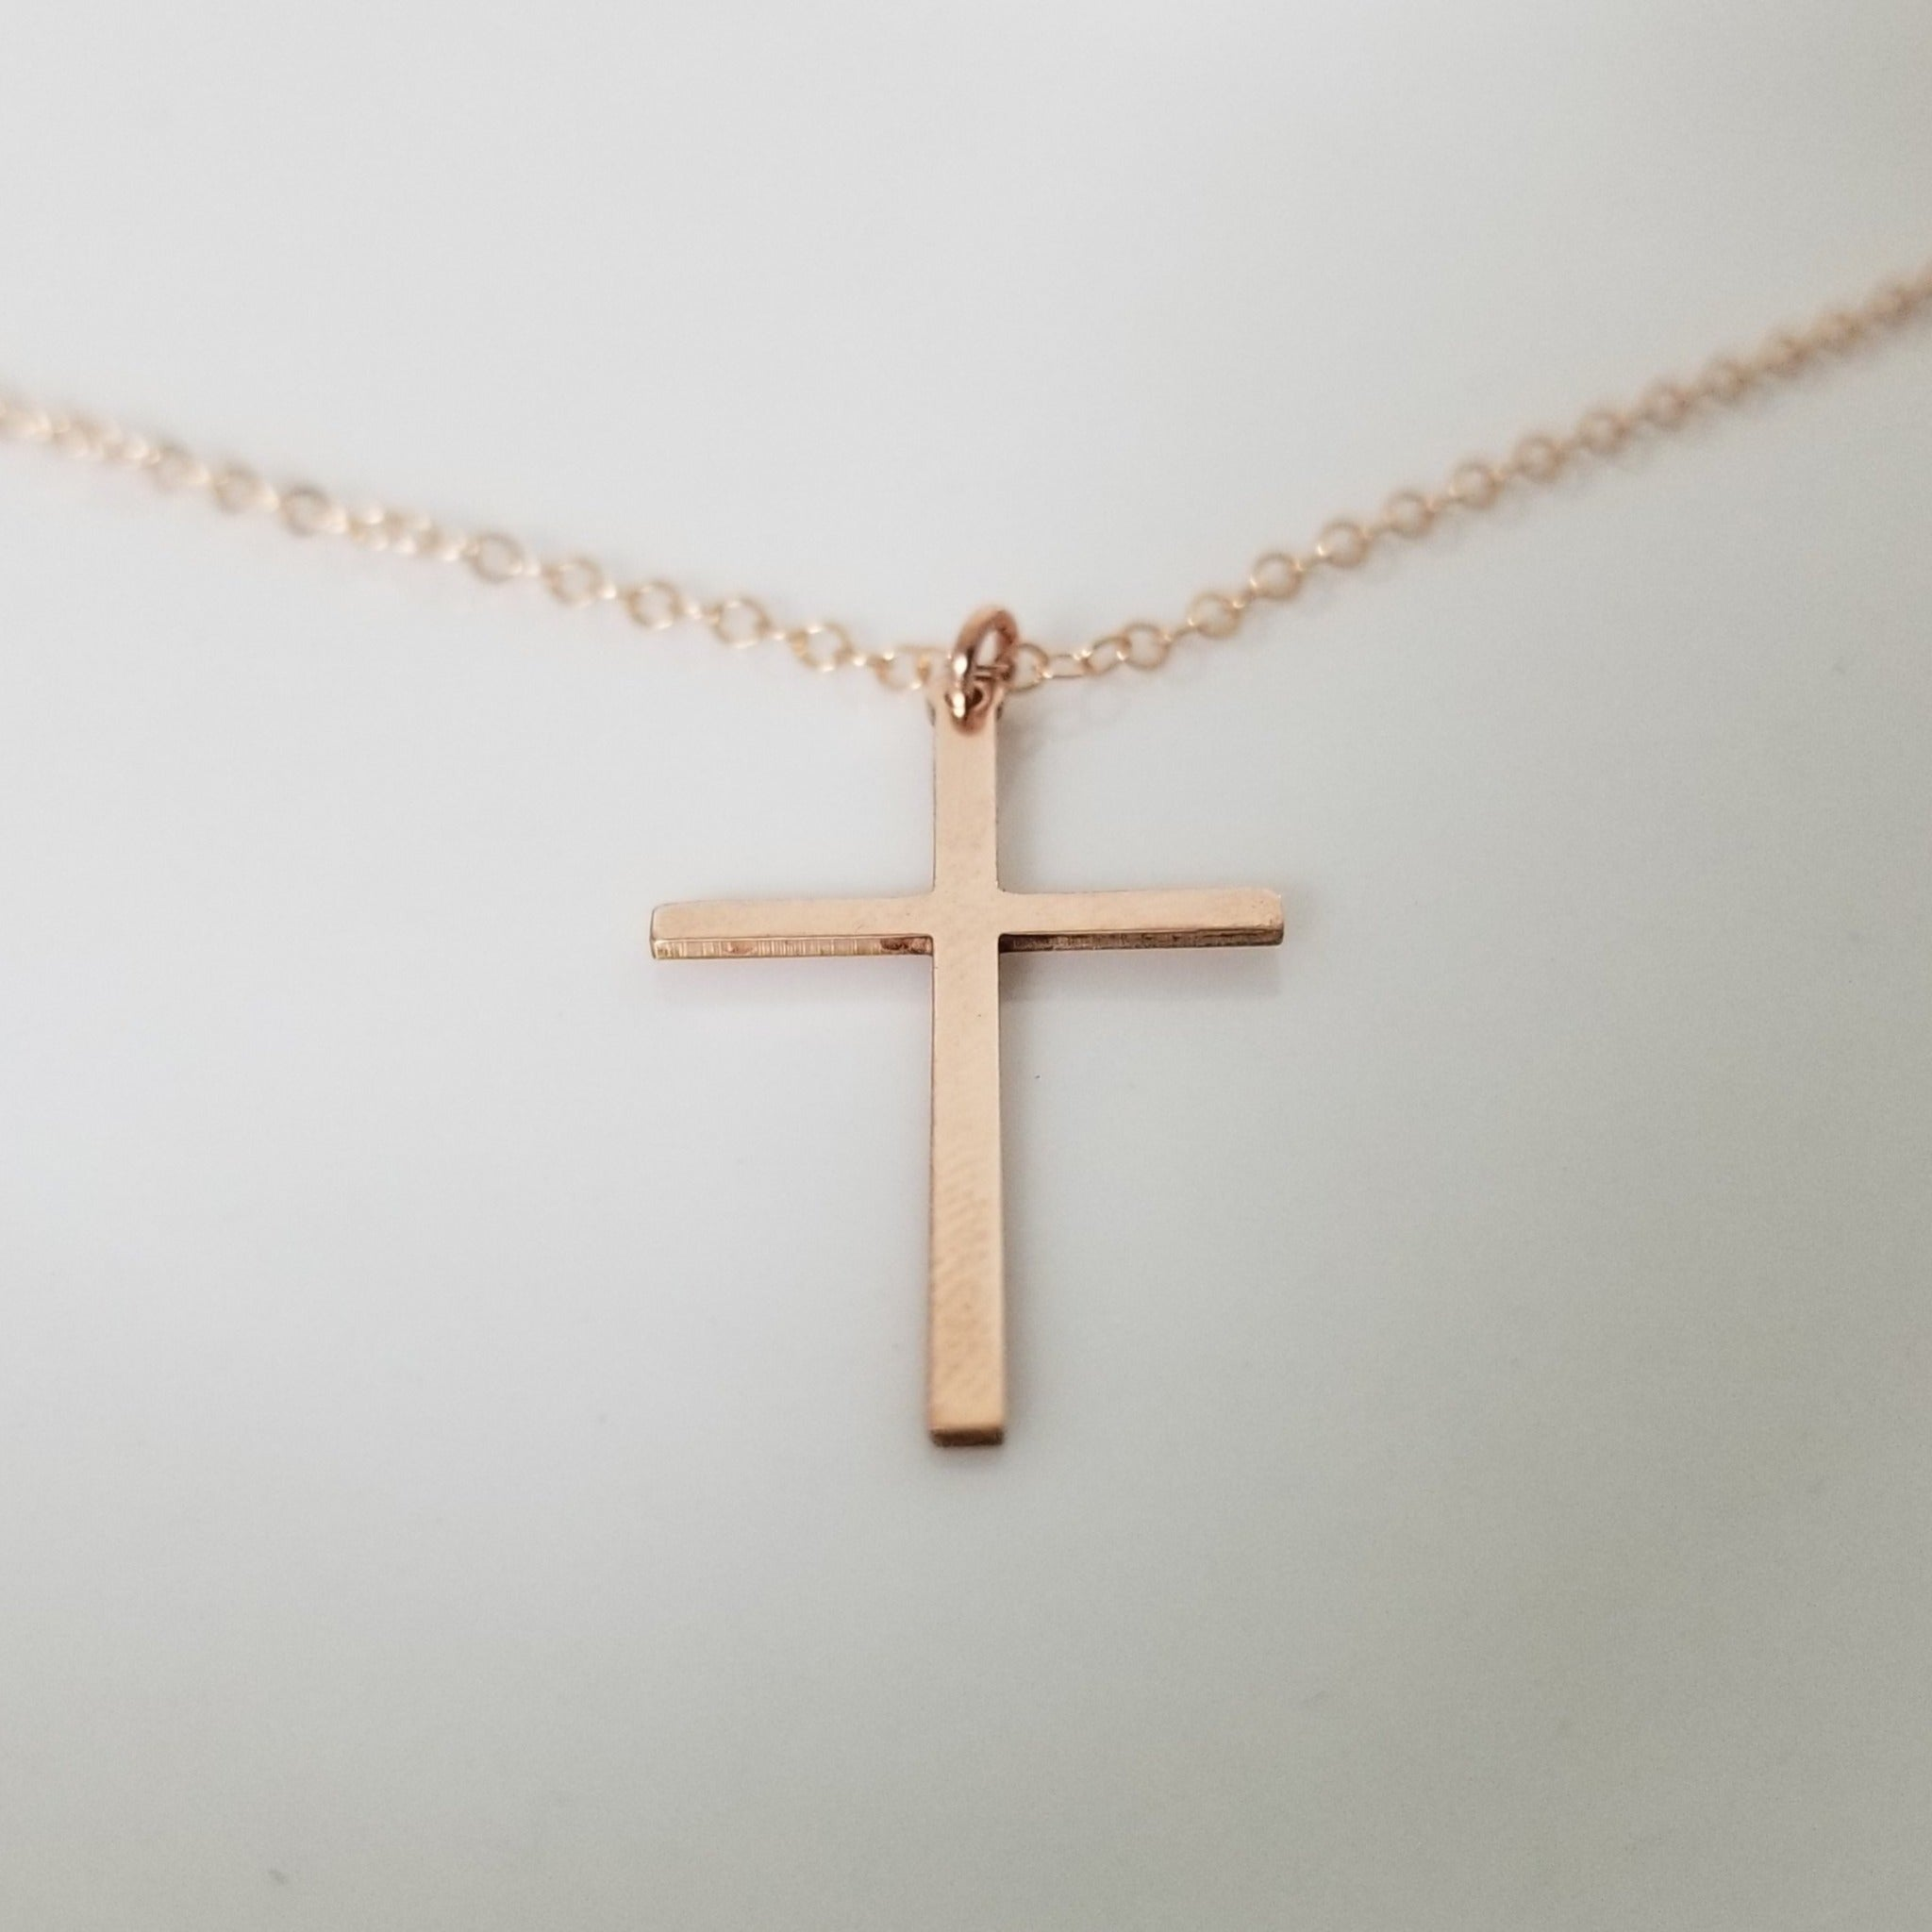 Long Sleek Cross Necklace - Gold or Rose Gold